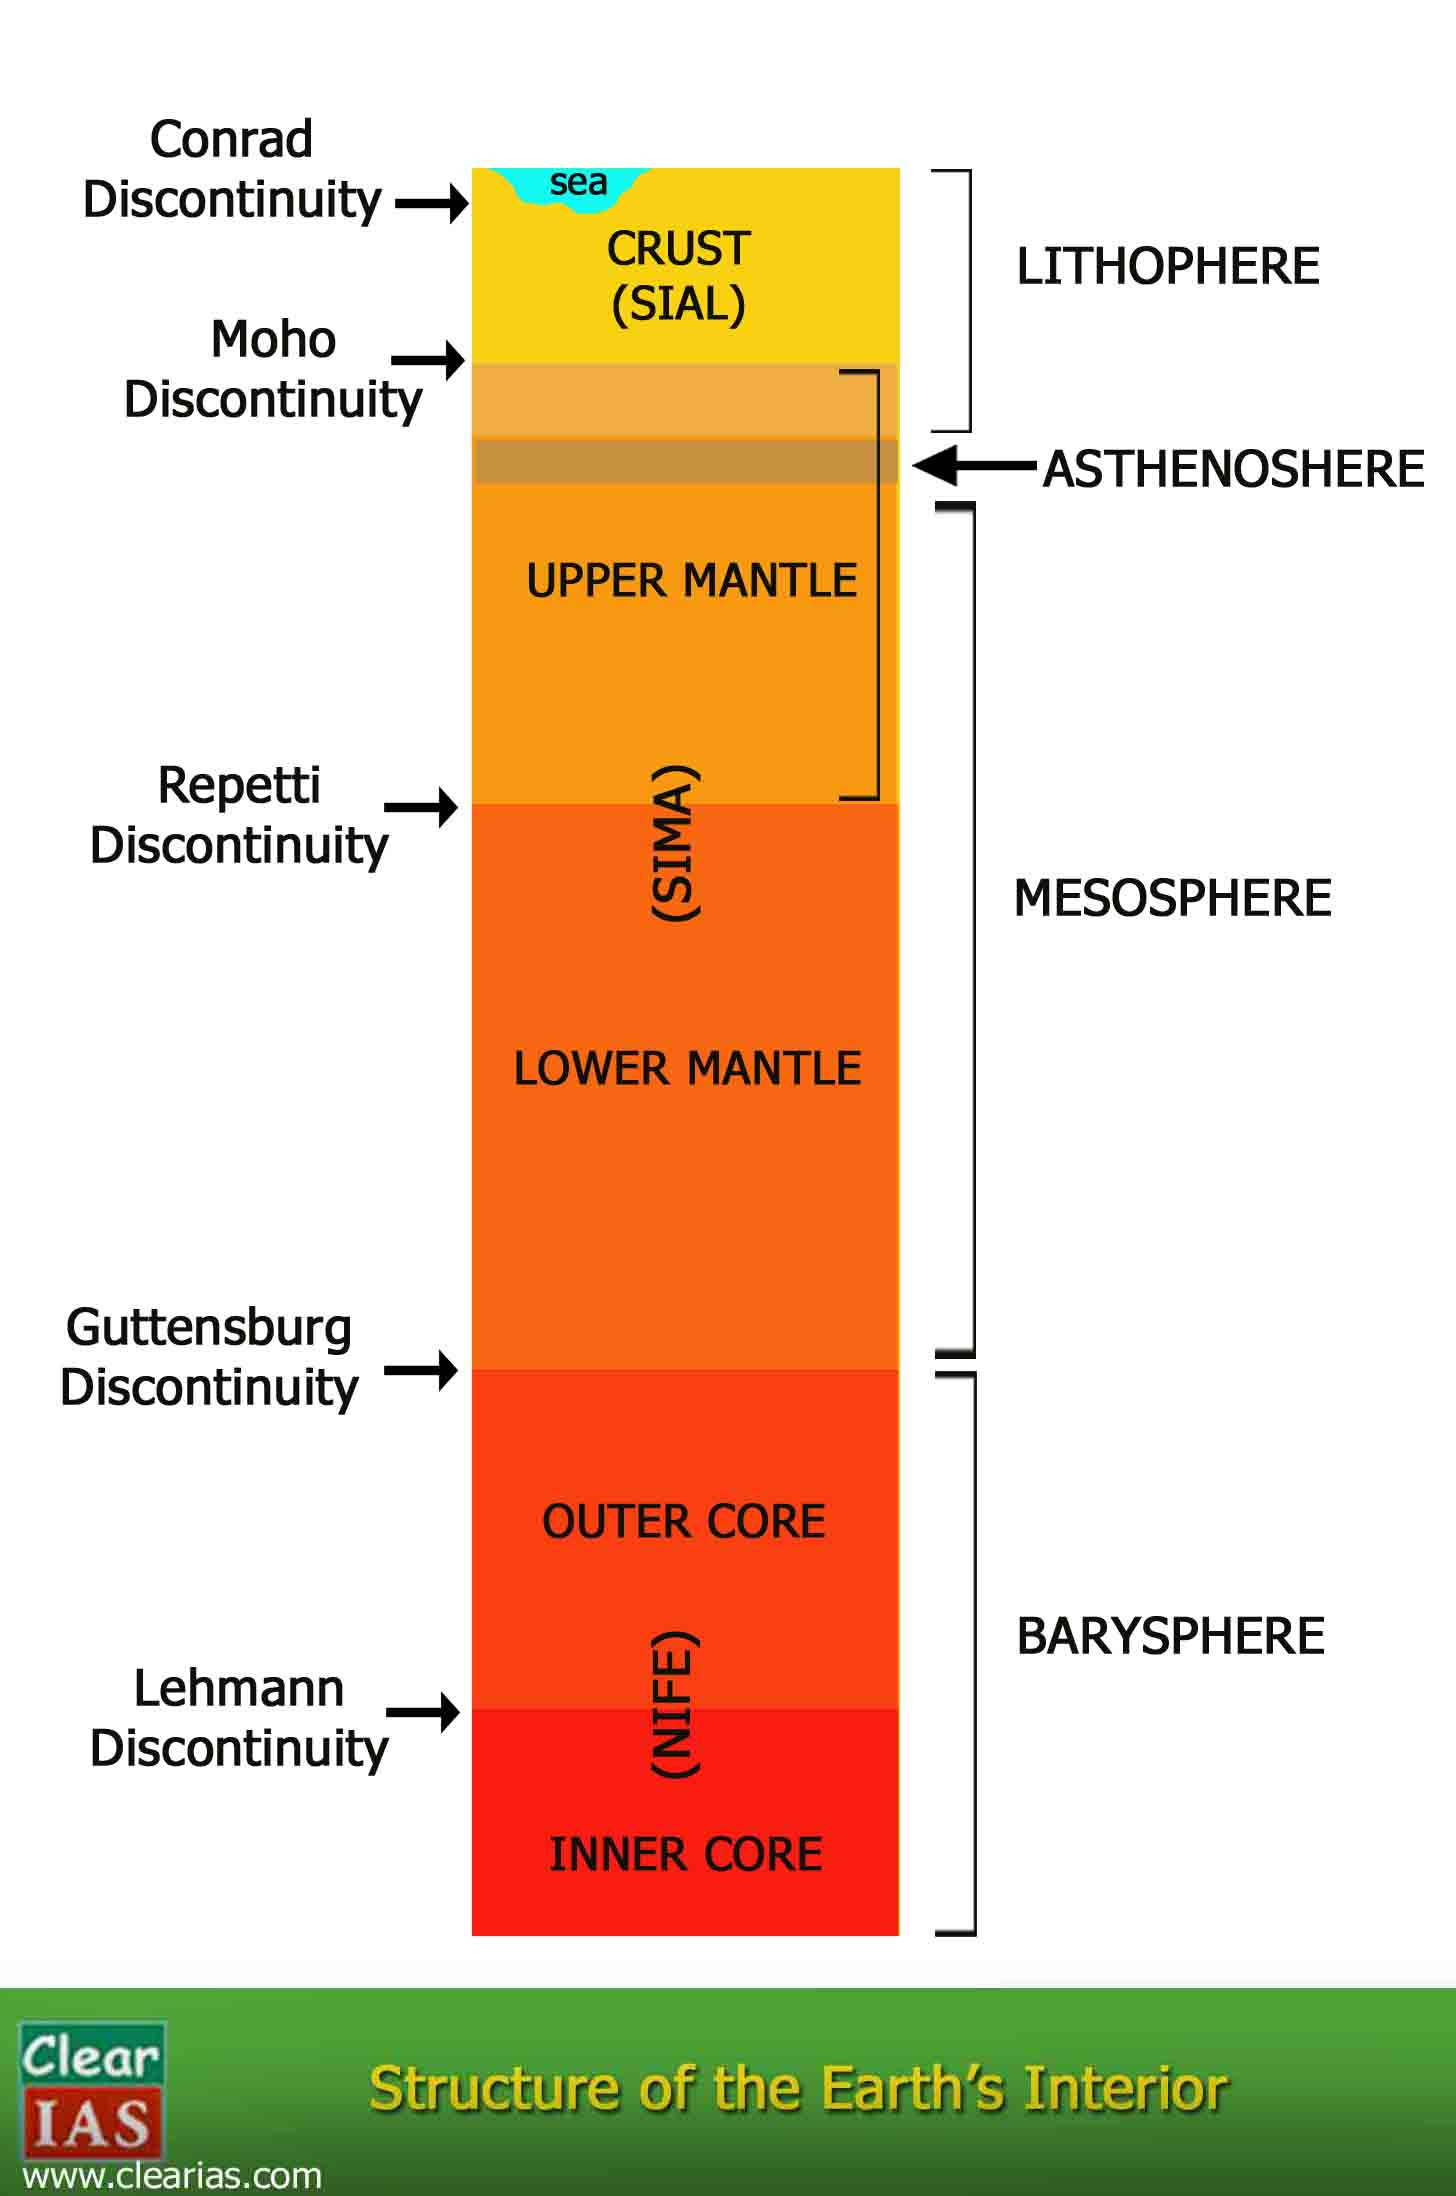 Interior of the earth crust mantle and core clear ias structure of the interior of the earth ccuart Images